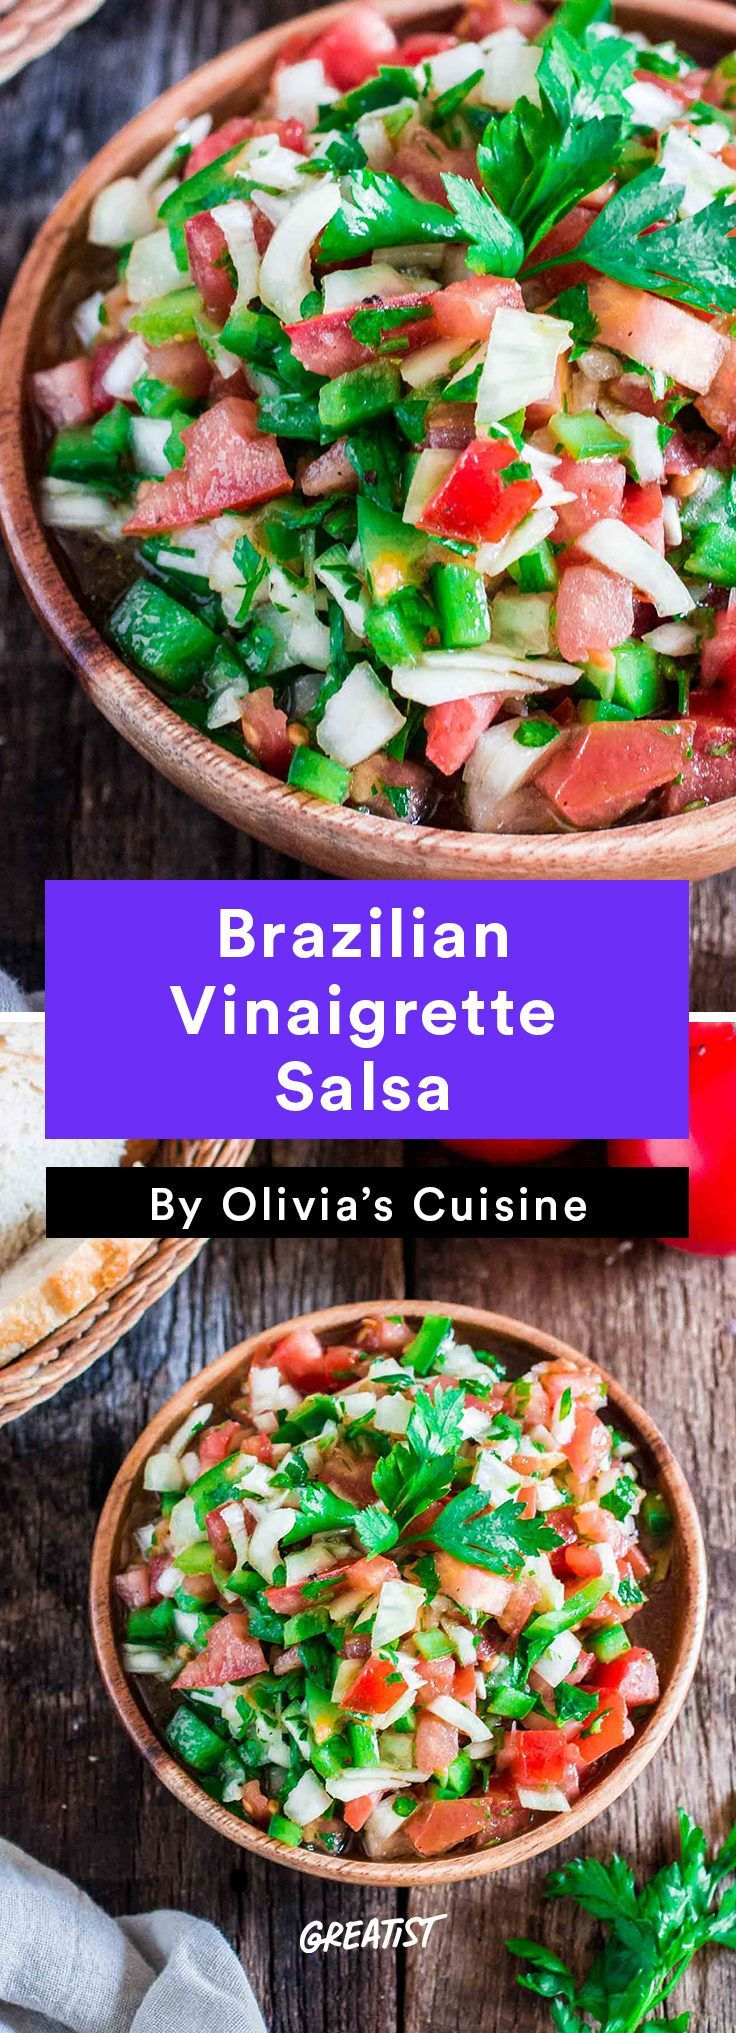 7 Gold MedalWorthy Brazilian Dishes Were Making Before the Olympics End  4 Brazilian Vinaigrette Salsa